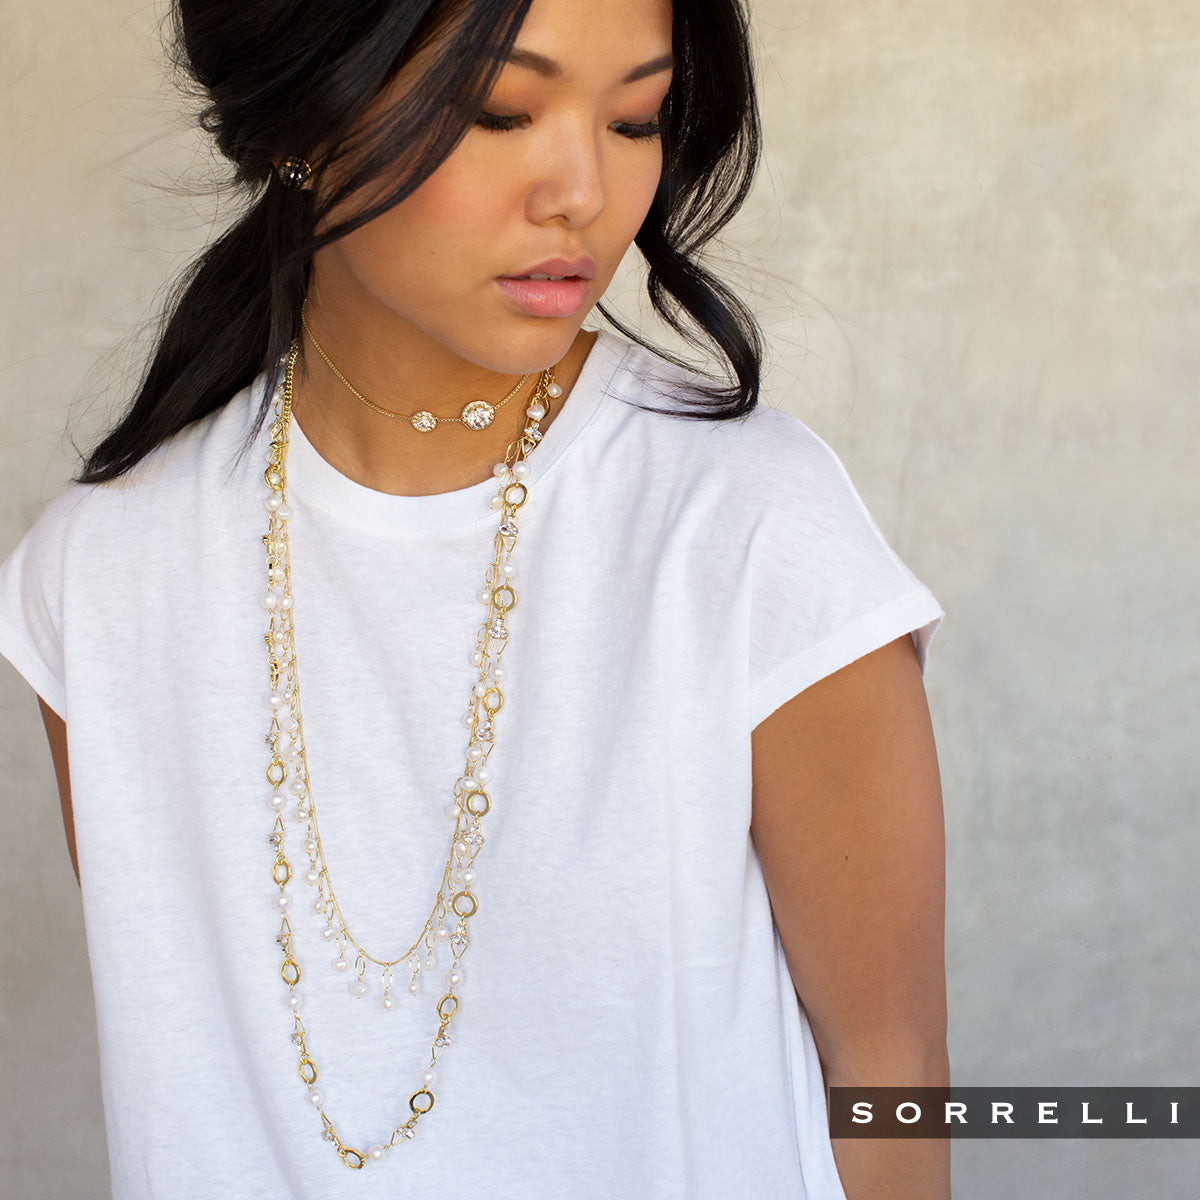 Hadley Long Necklace - NEB16BGMDP